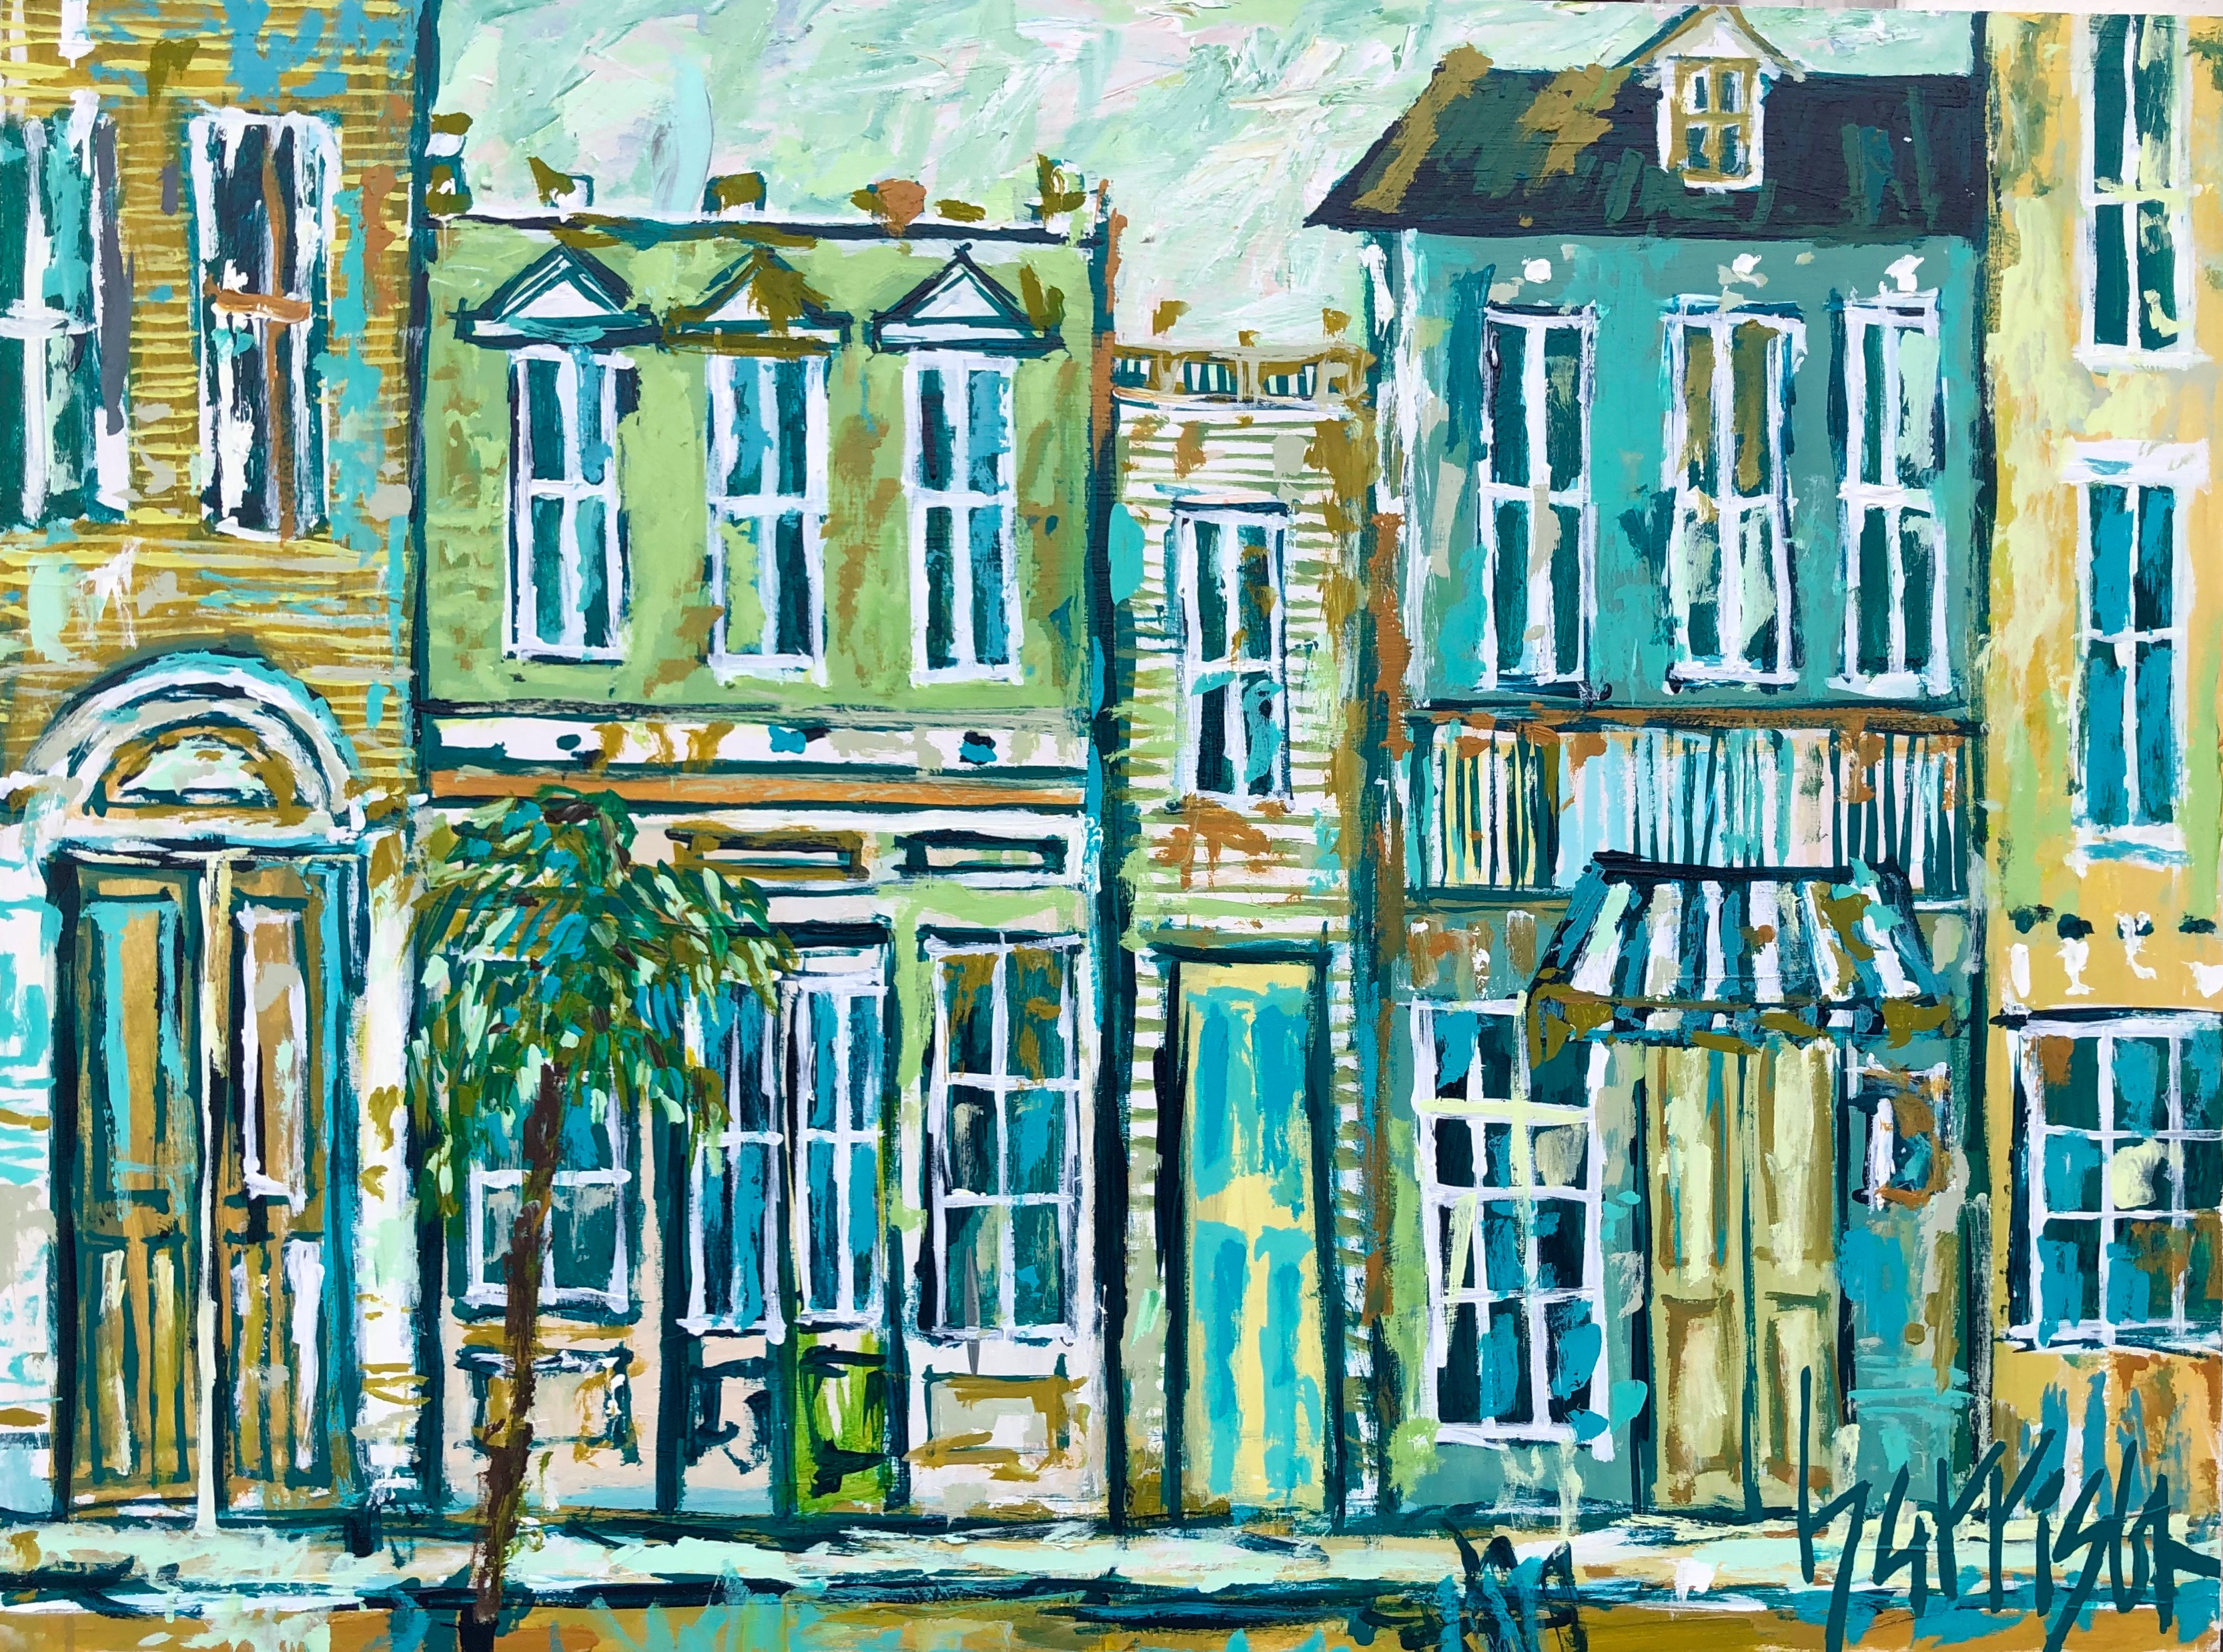 JUST OFF BROAD STREET 30x40